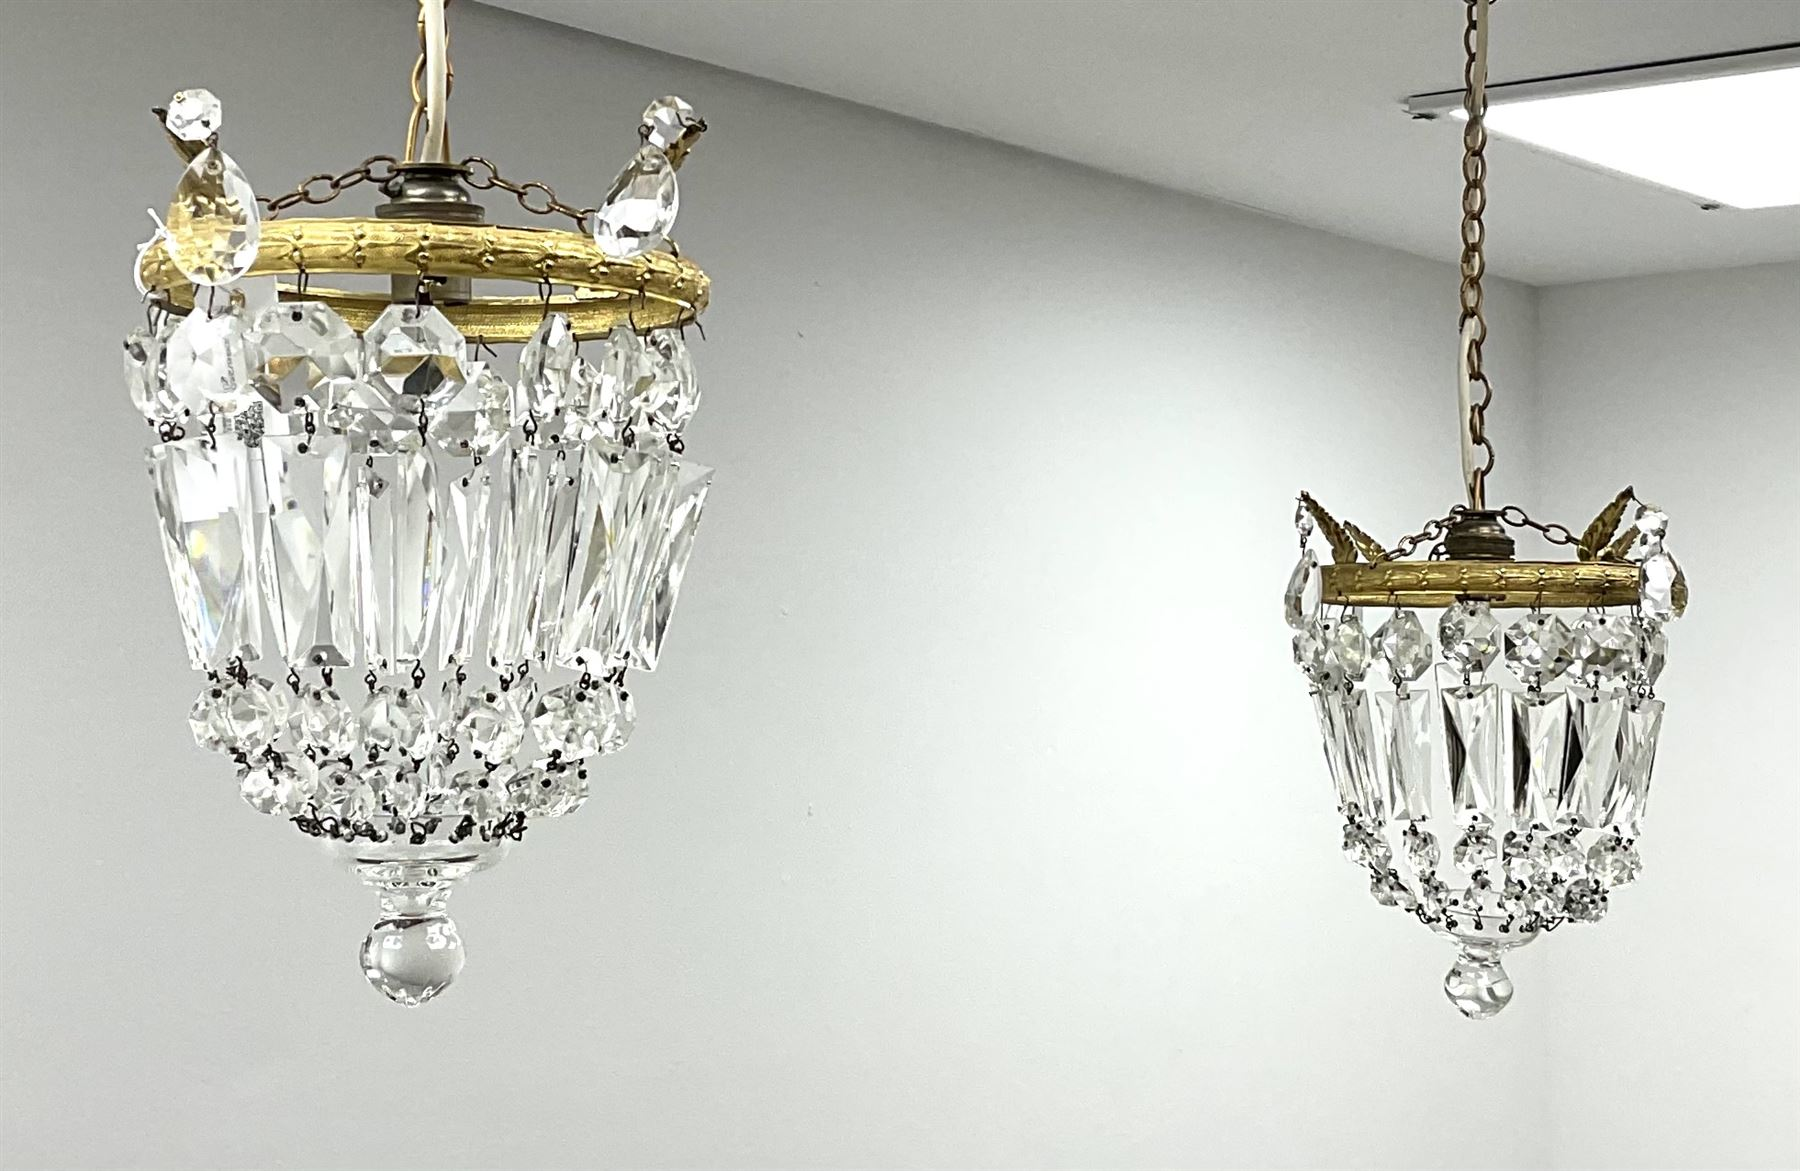 A pair of cut glass bag chandeliers with gilt metal mounts of clear glass drops